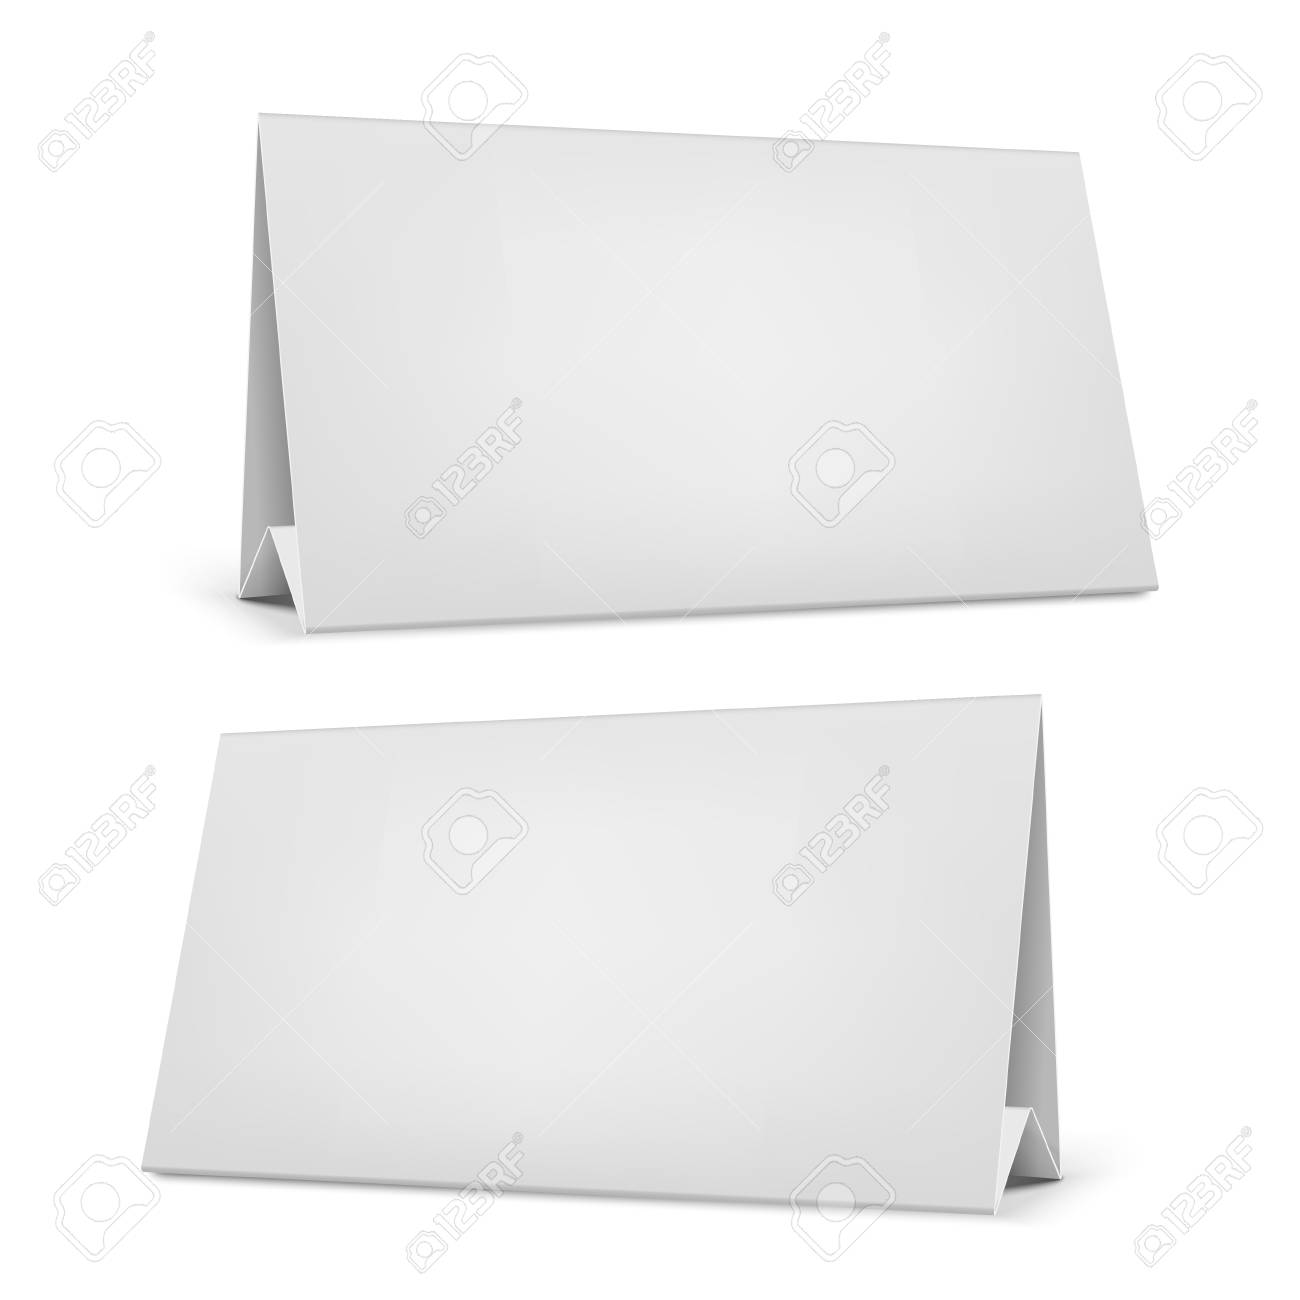 Realistic White Blank Desk Calendar With Stand Royalty Free